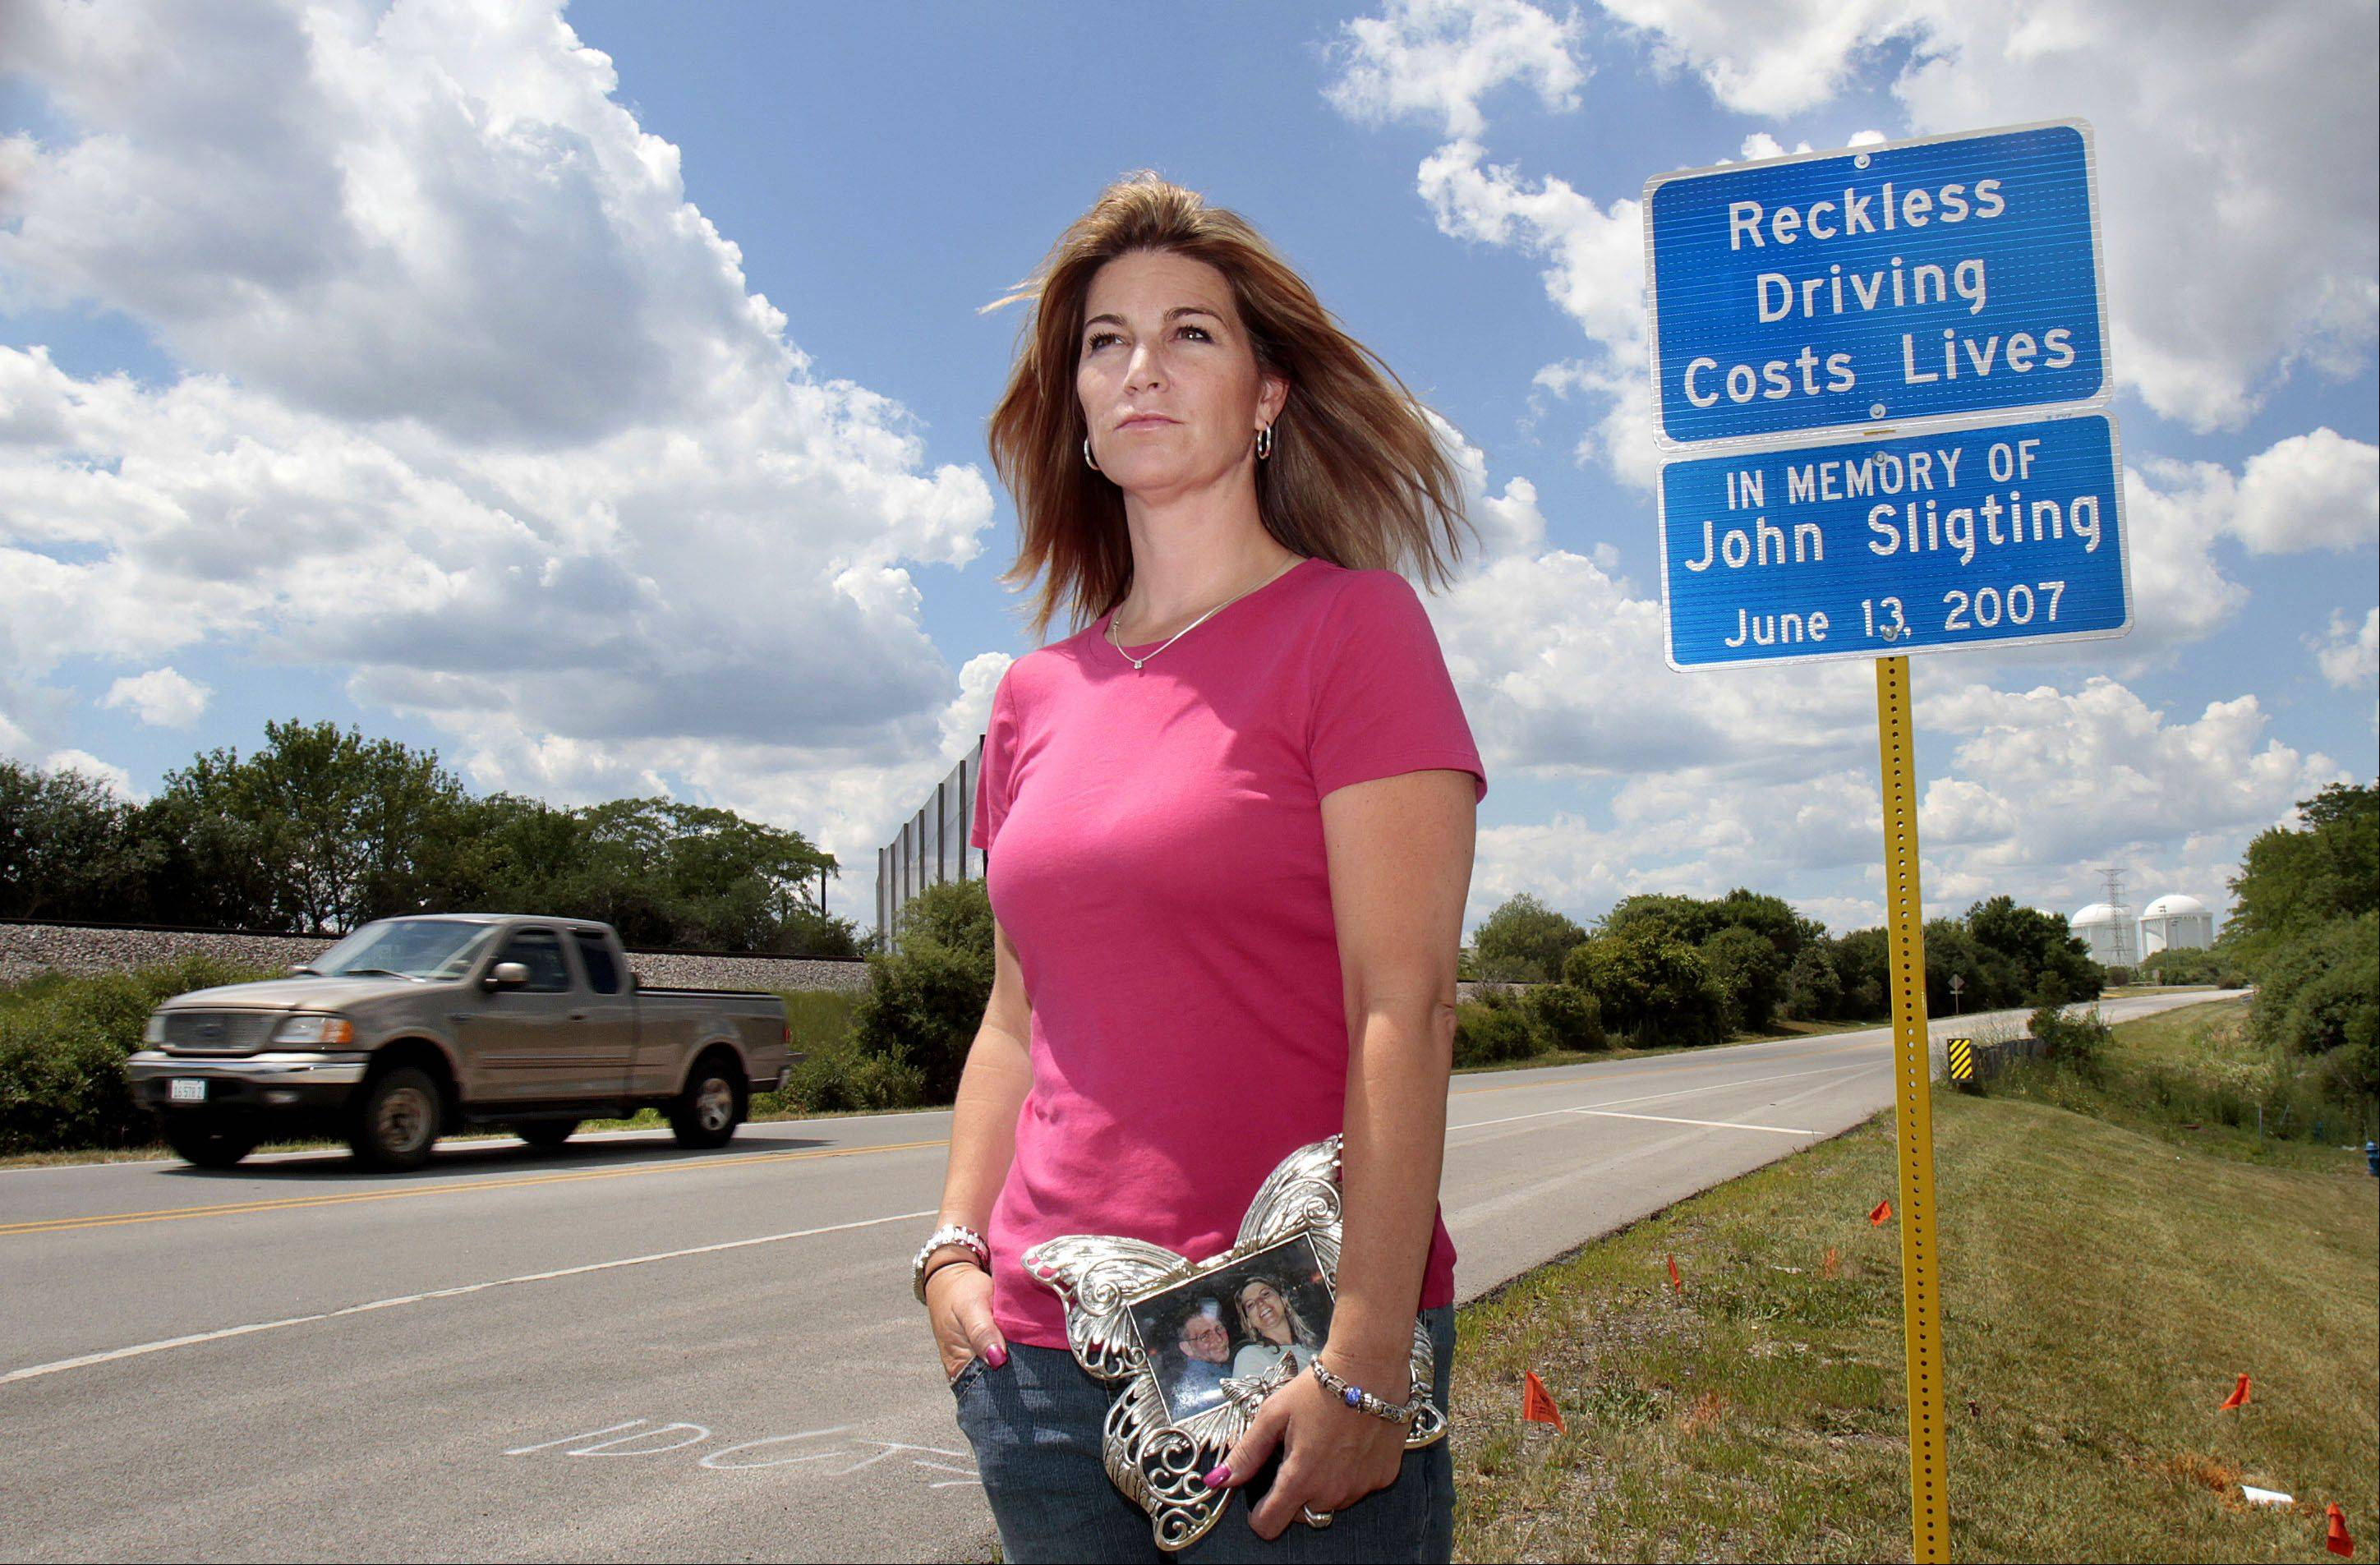 Charlene Sligting of Elgin holds a picture of her with her father, John, by signs recently installed by the Illinois Department of Transportation on Route 137 near Libertyville, where her father was killed in 2007.